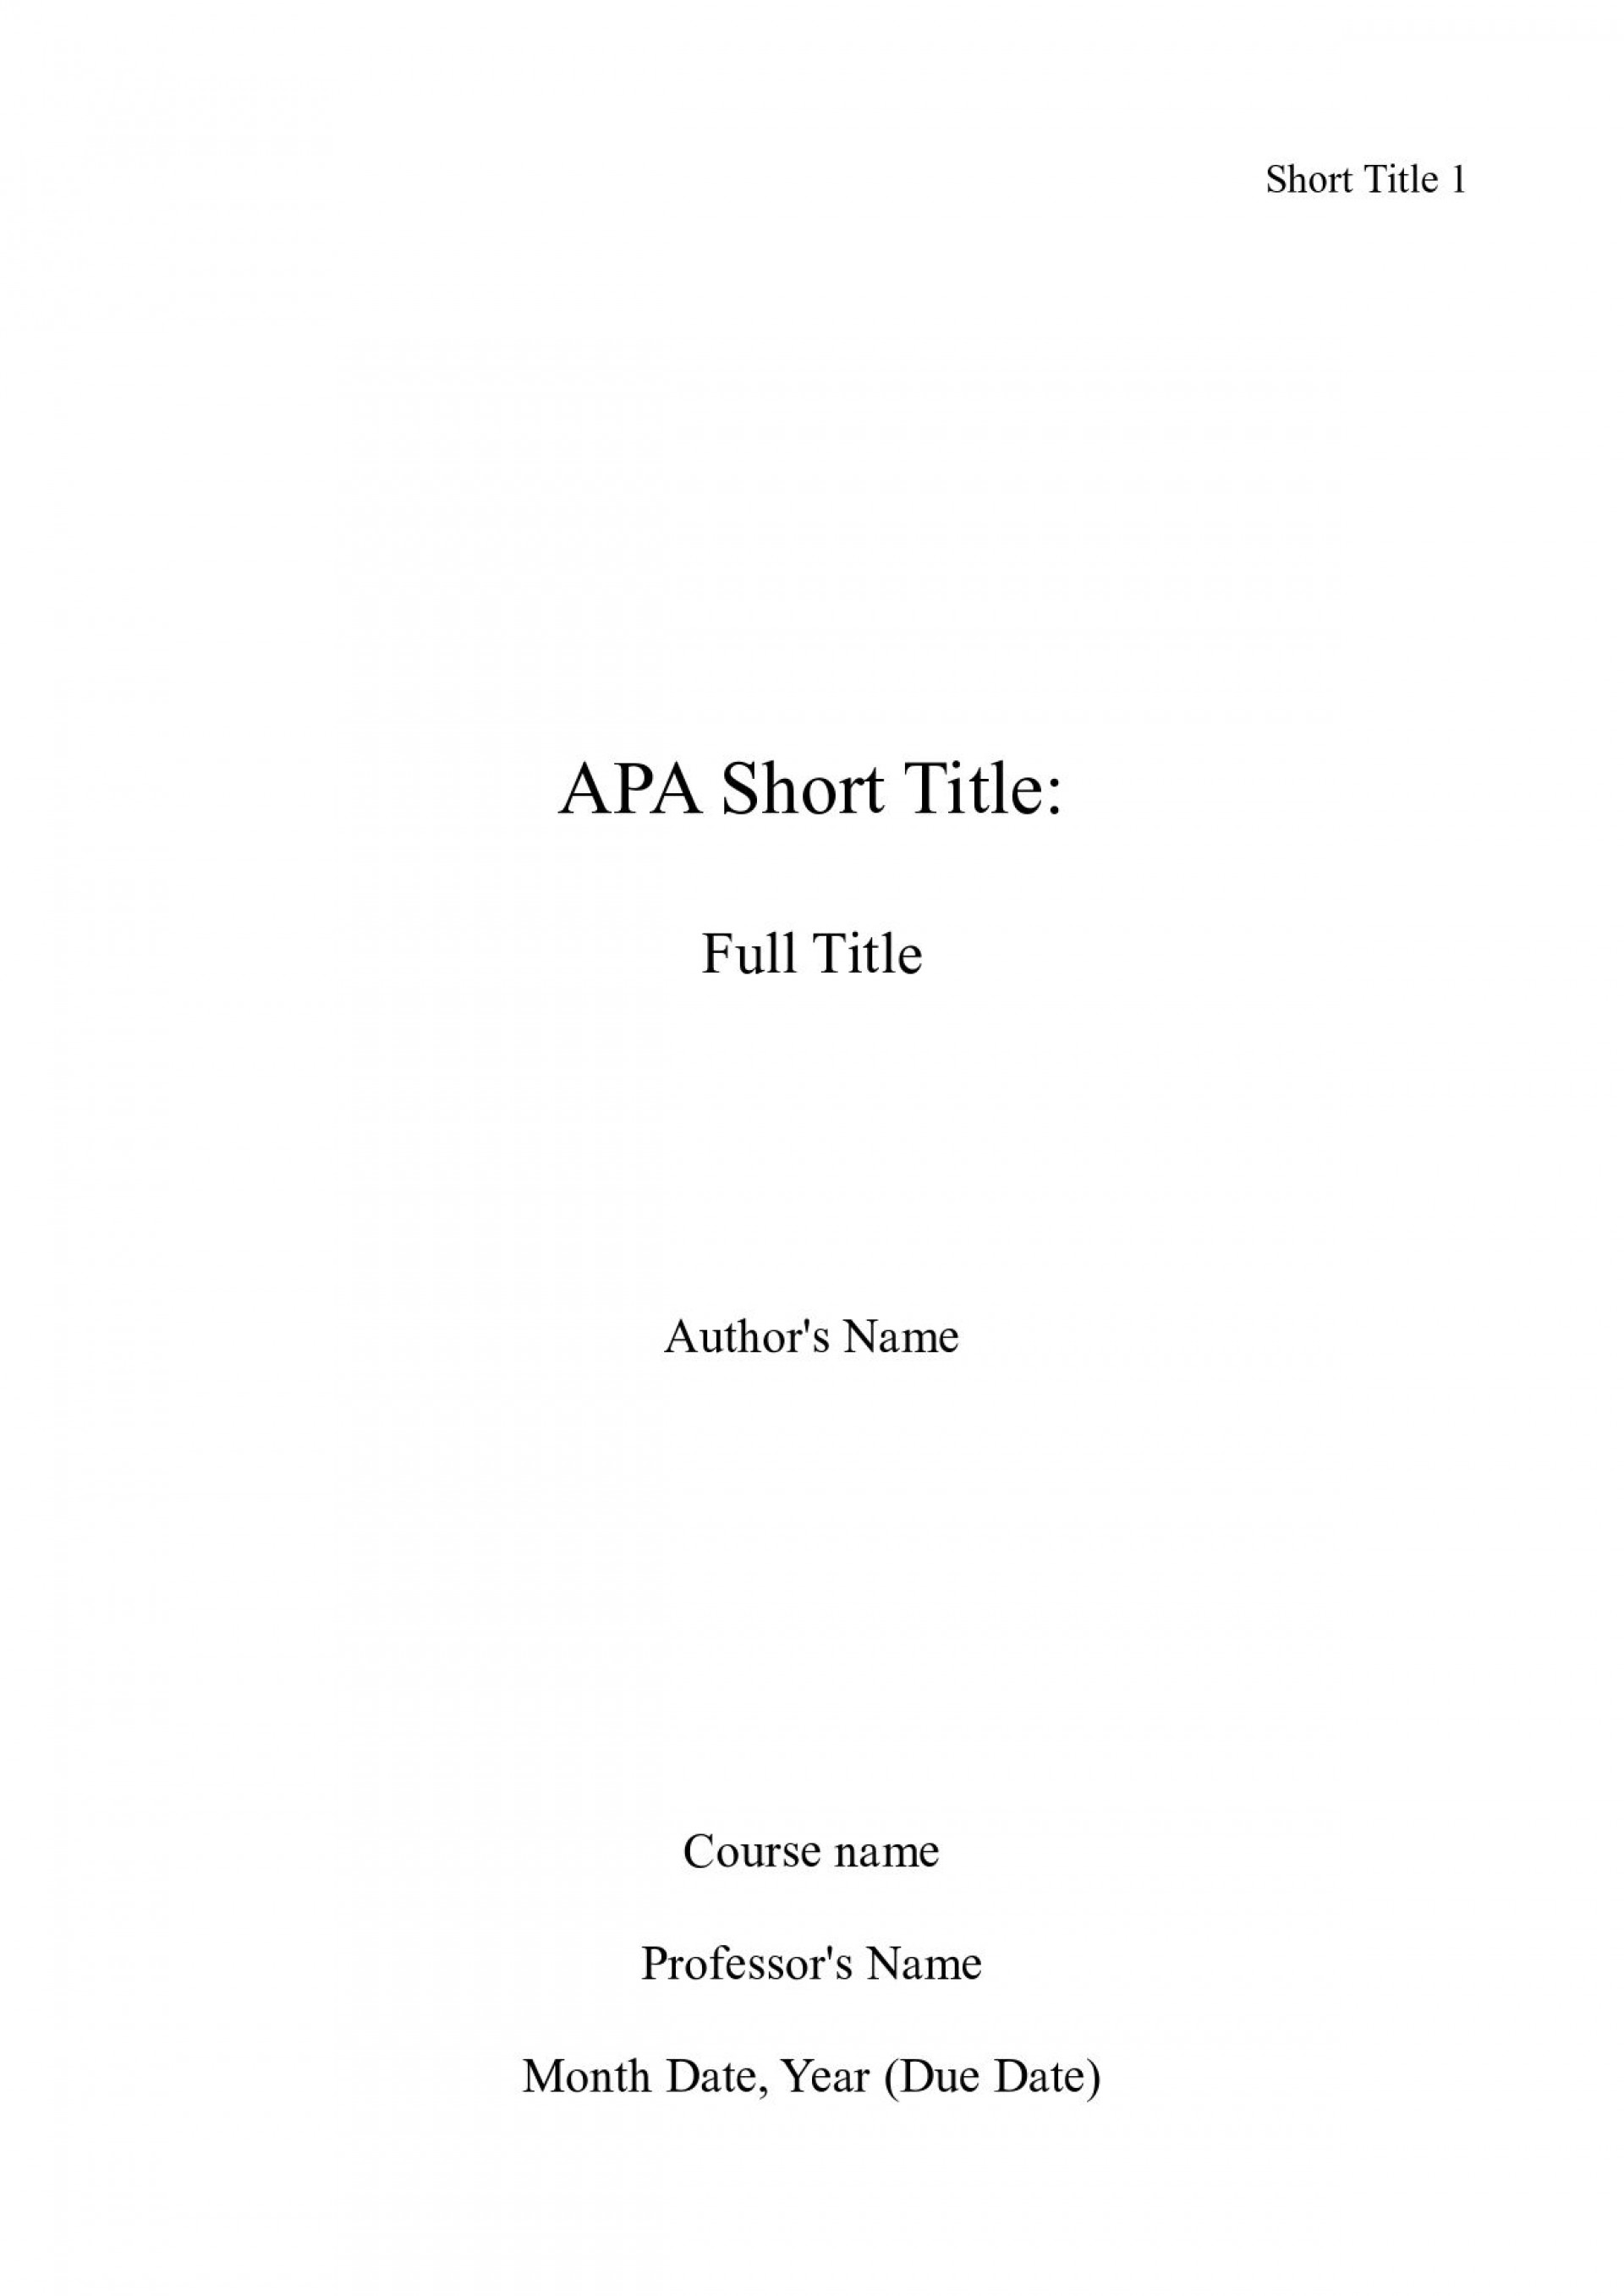 003 Research Paper Cover Page Apa Excellent Layout Format Example Style 1920